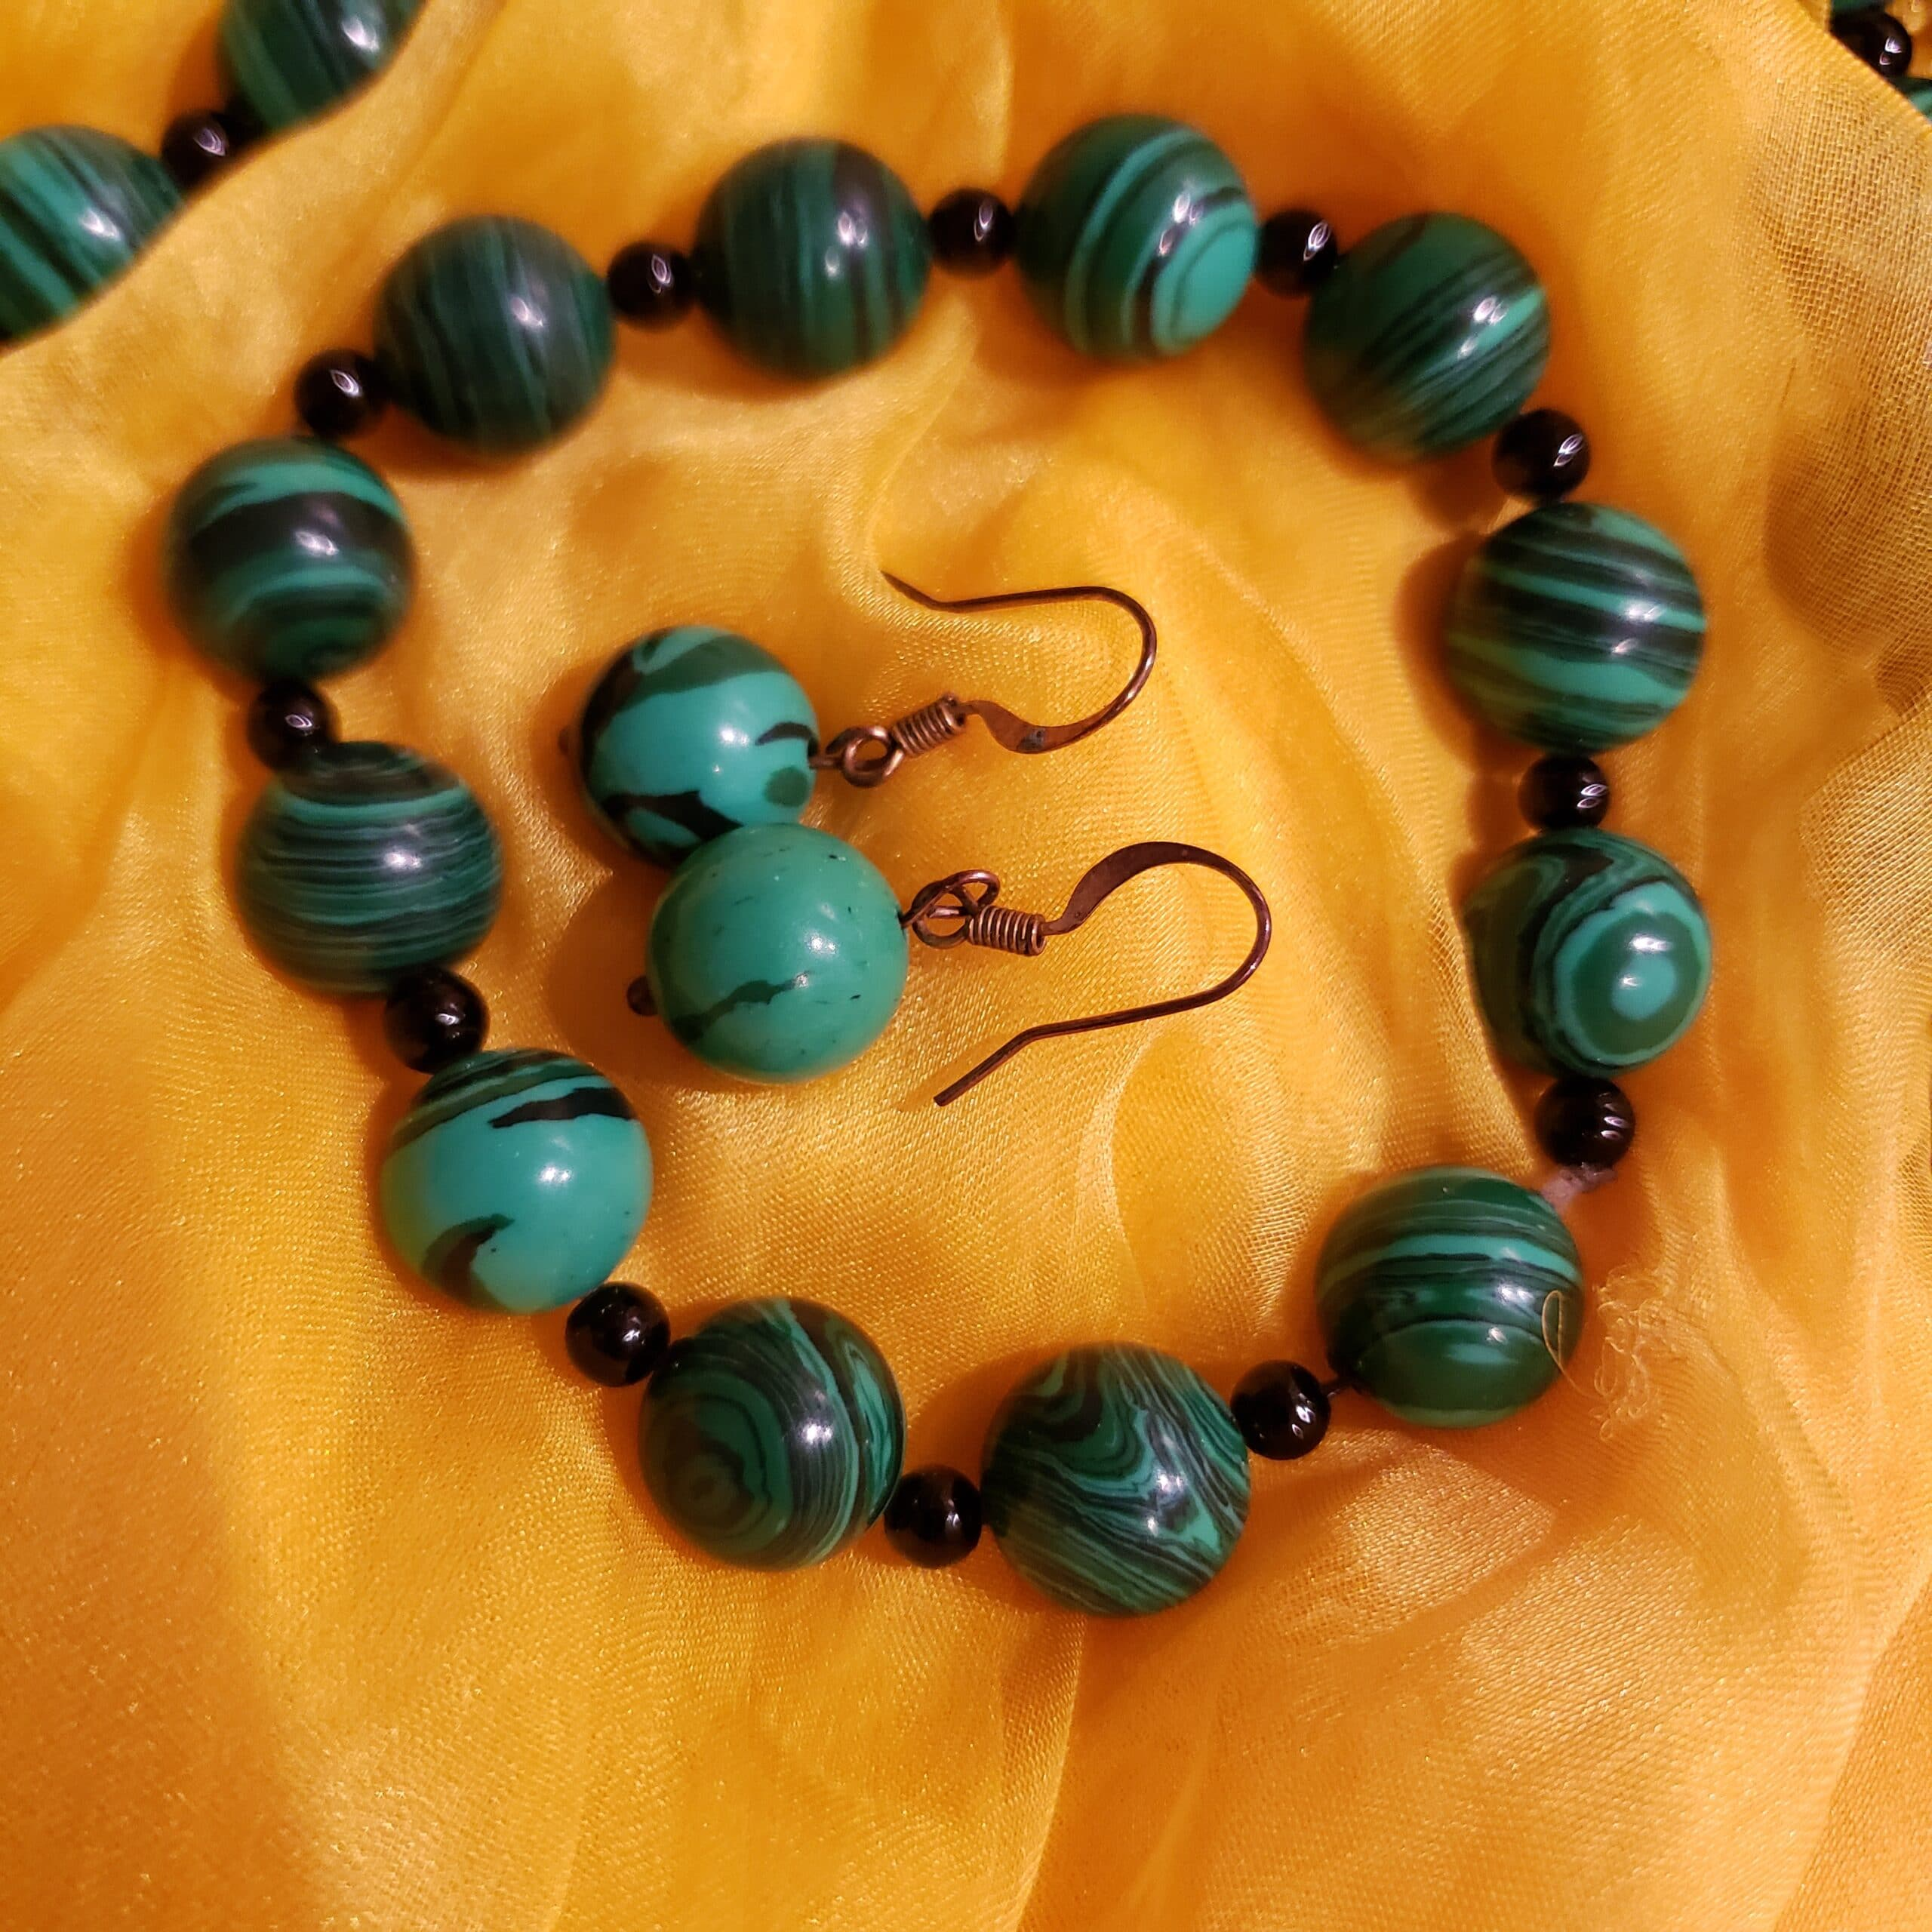 malachite necklace and earrings